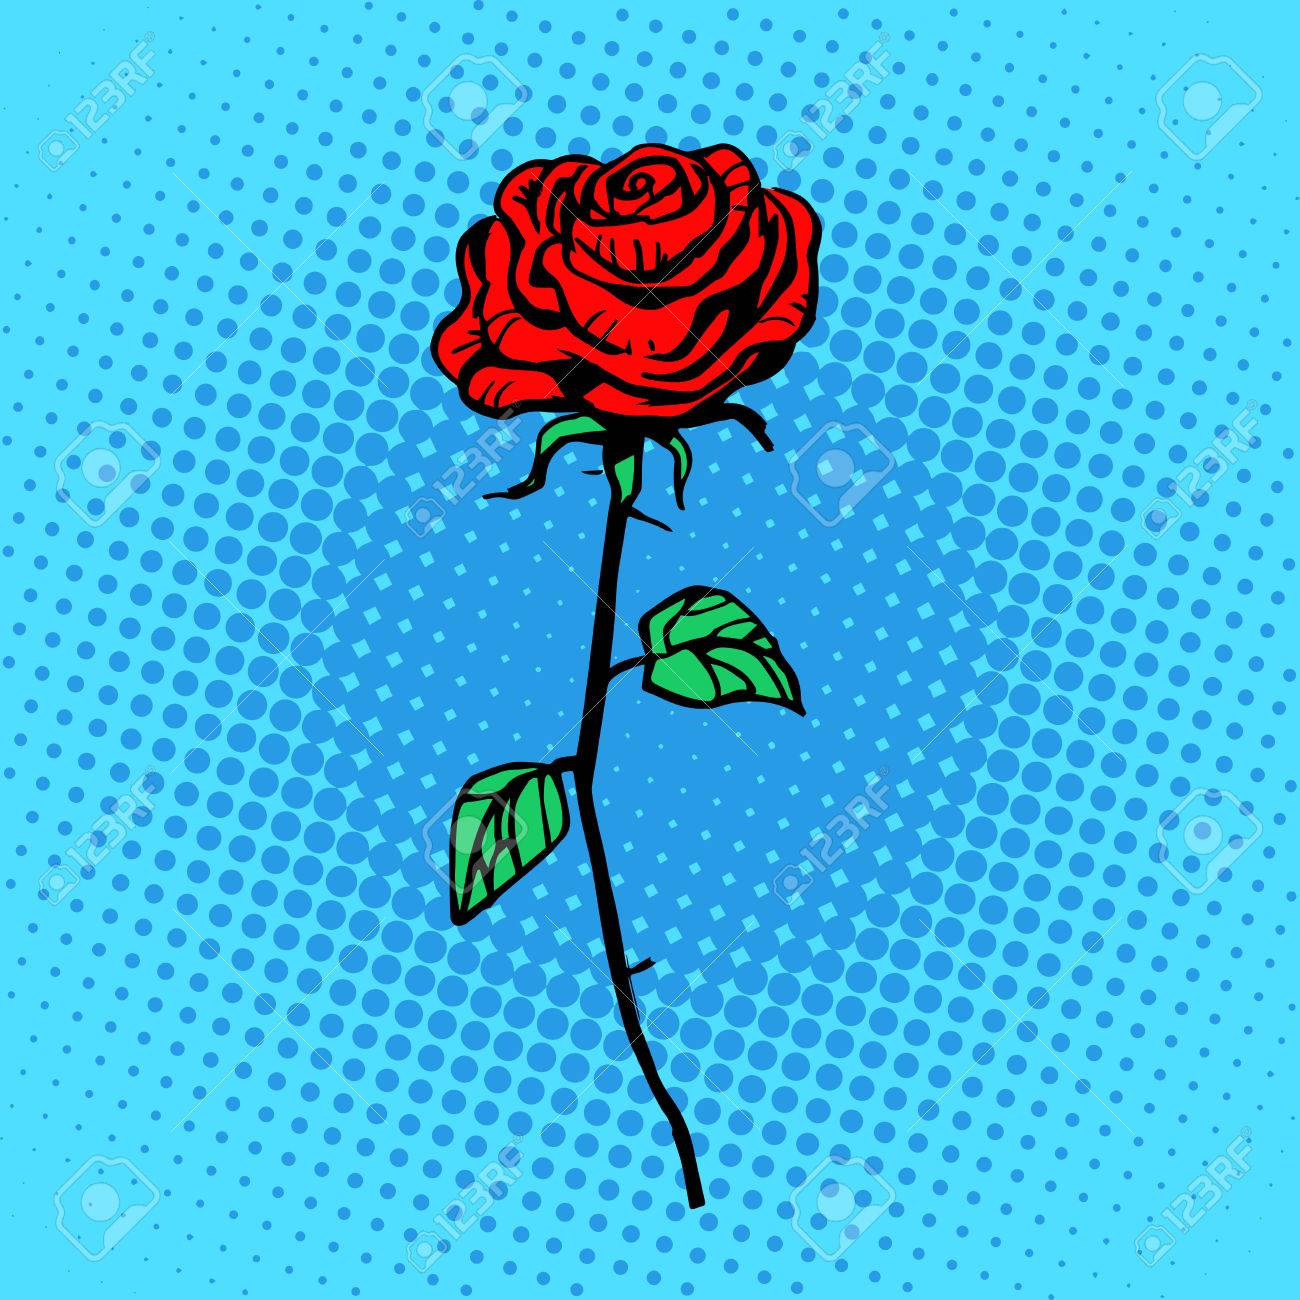 Flower red rose stem with thorns a symbol of love and romance flower red rose stem with thorns a symbol of love and romance stock vector 44338095 buycottarizona